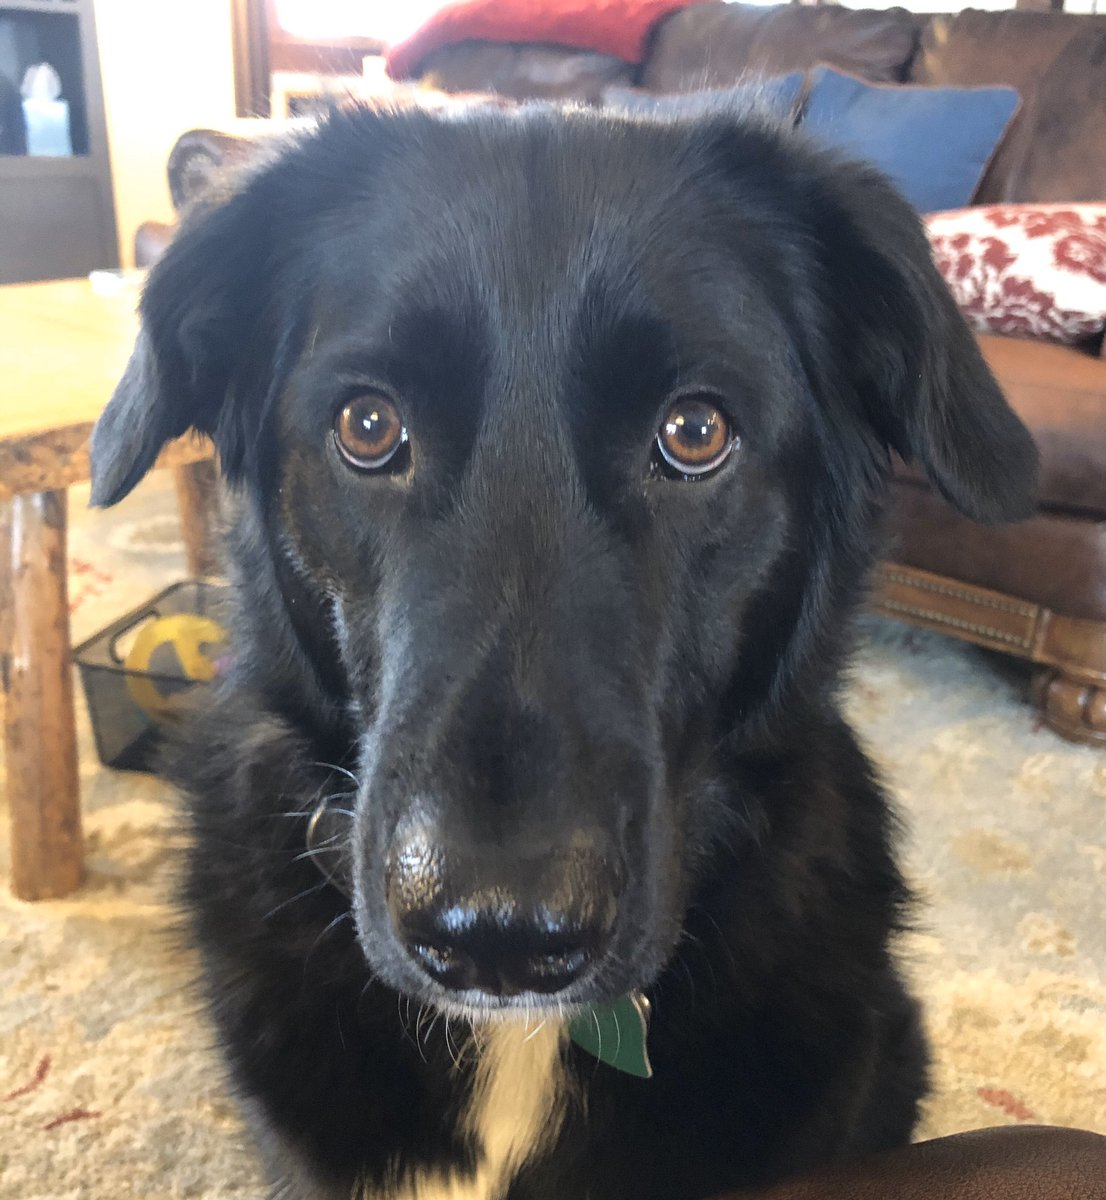 """Discovered that Harley the Dog likes Tostitos """"Hint of Lime"""" chips and honey roasted peanuts while sheltering at home. So he's winning#bestdogever pic.twitter.com/gLCW3LNMkN"""